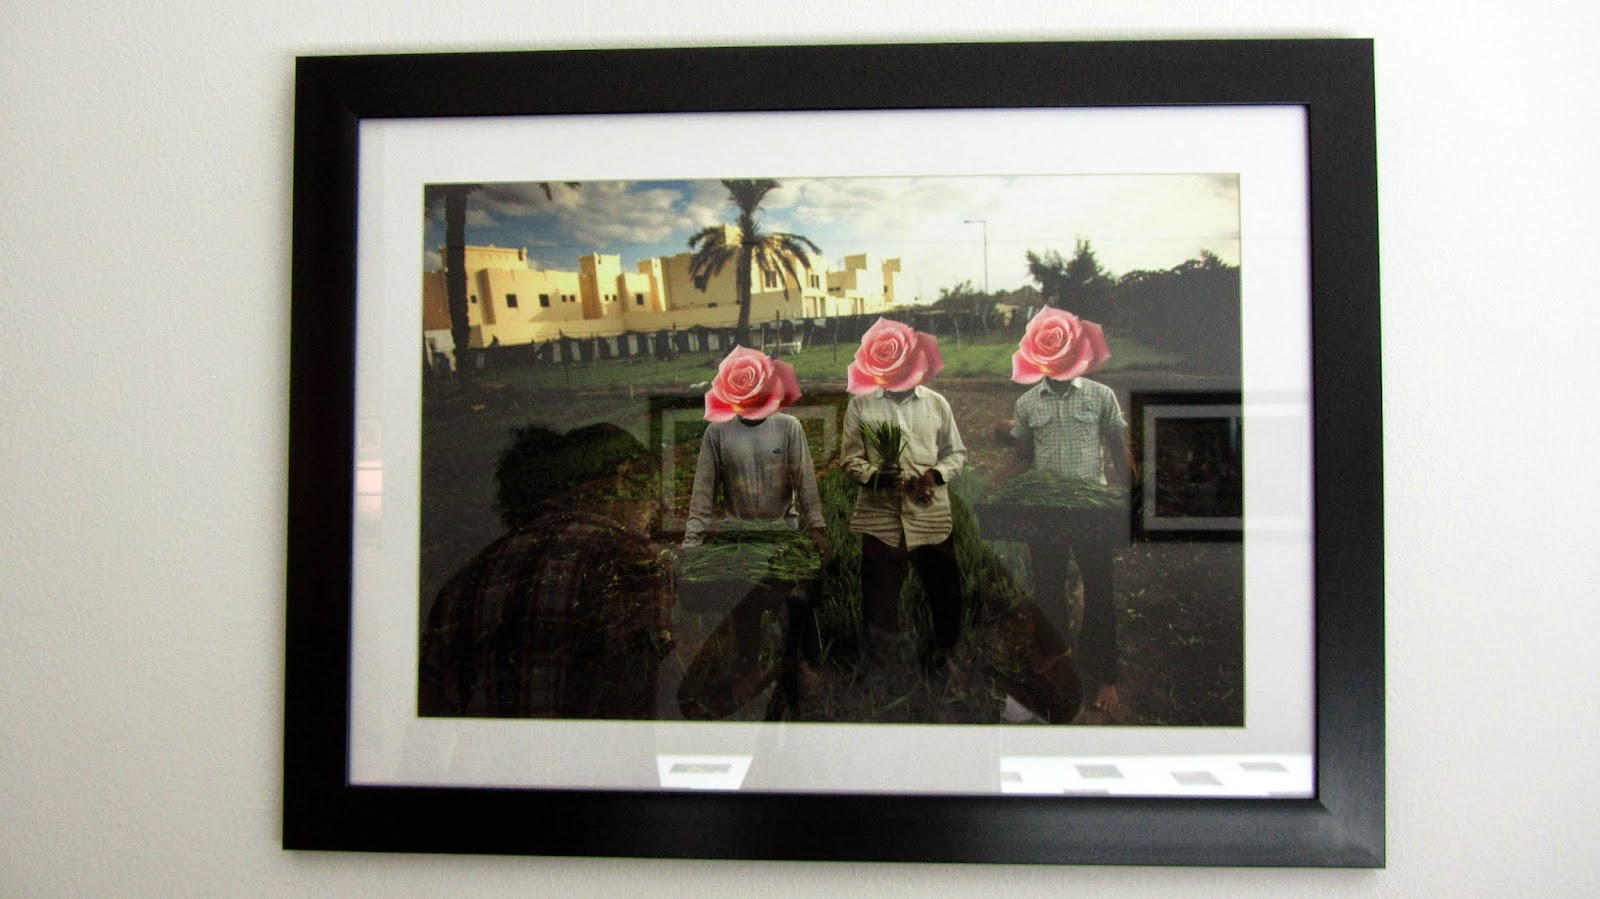 migrant workers Bahrain National Museum Pop Culture Middle East